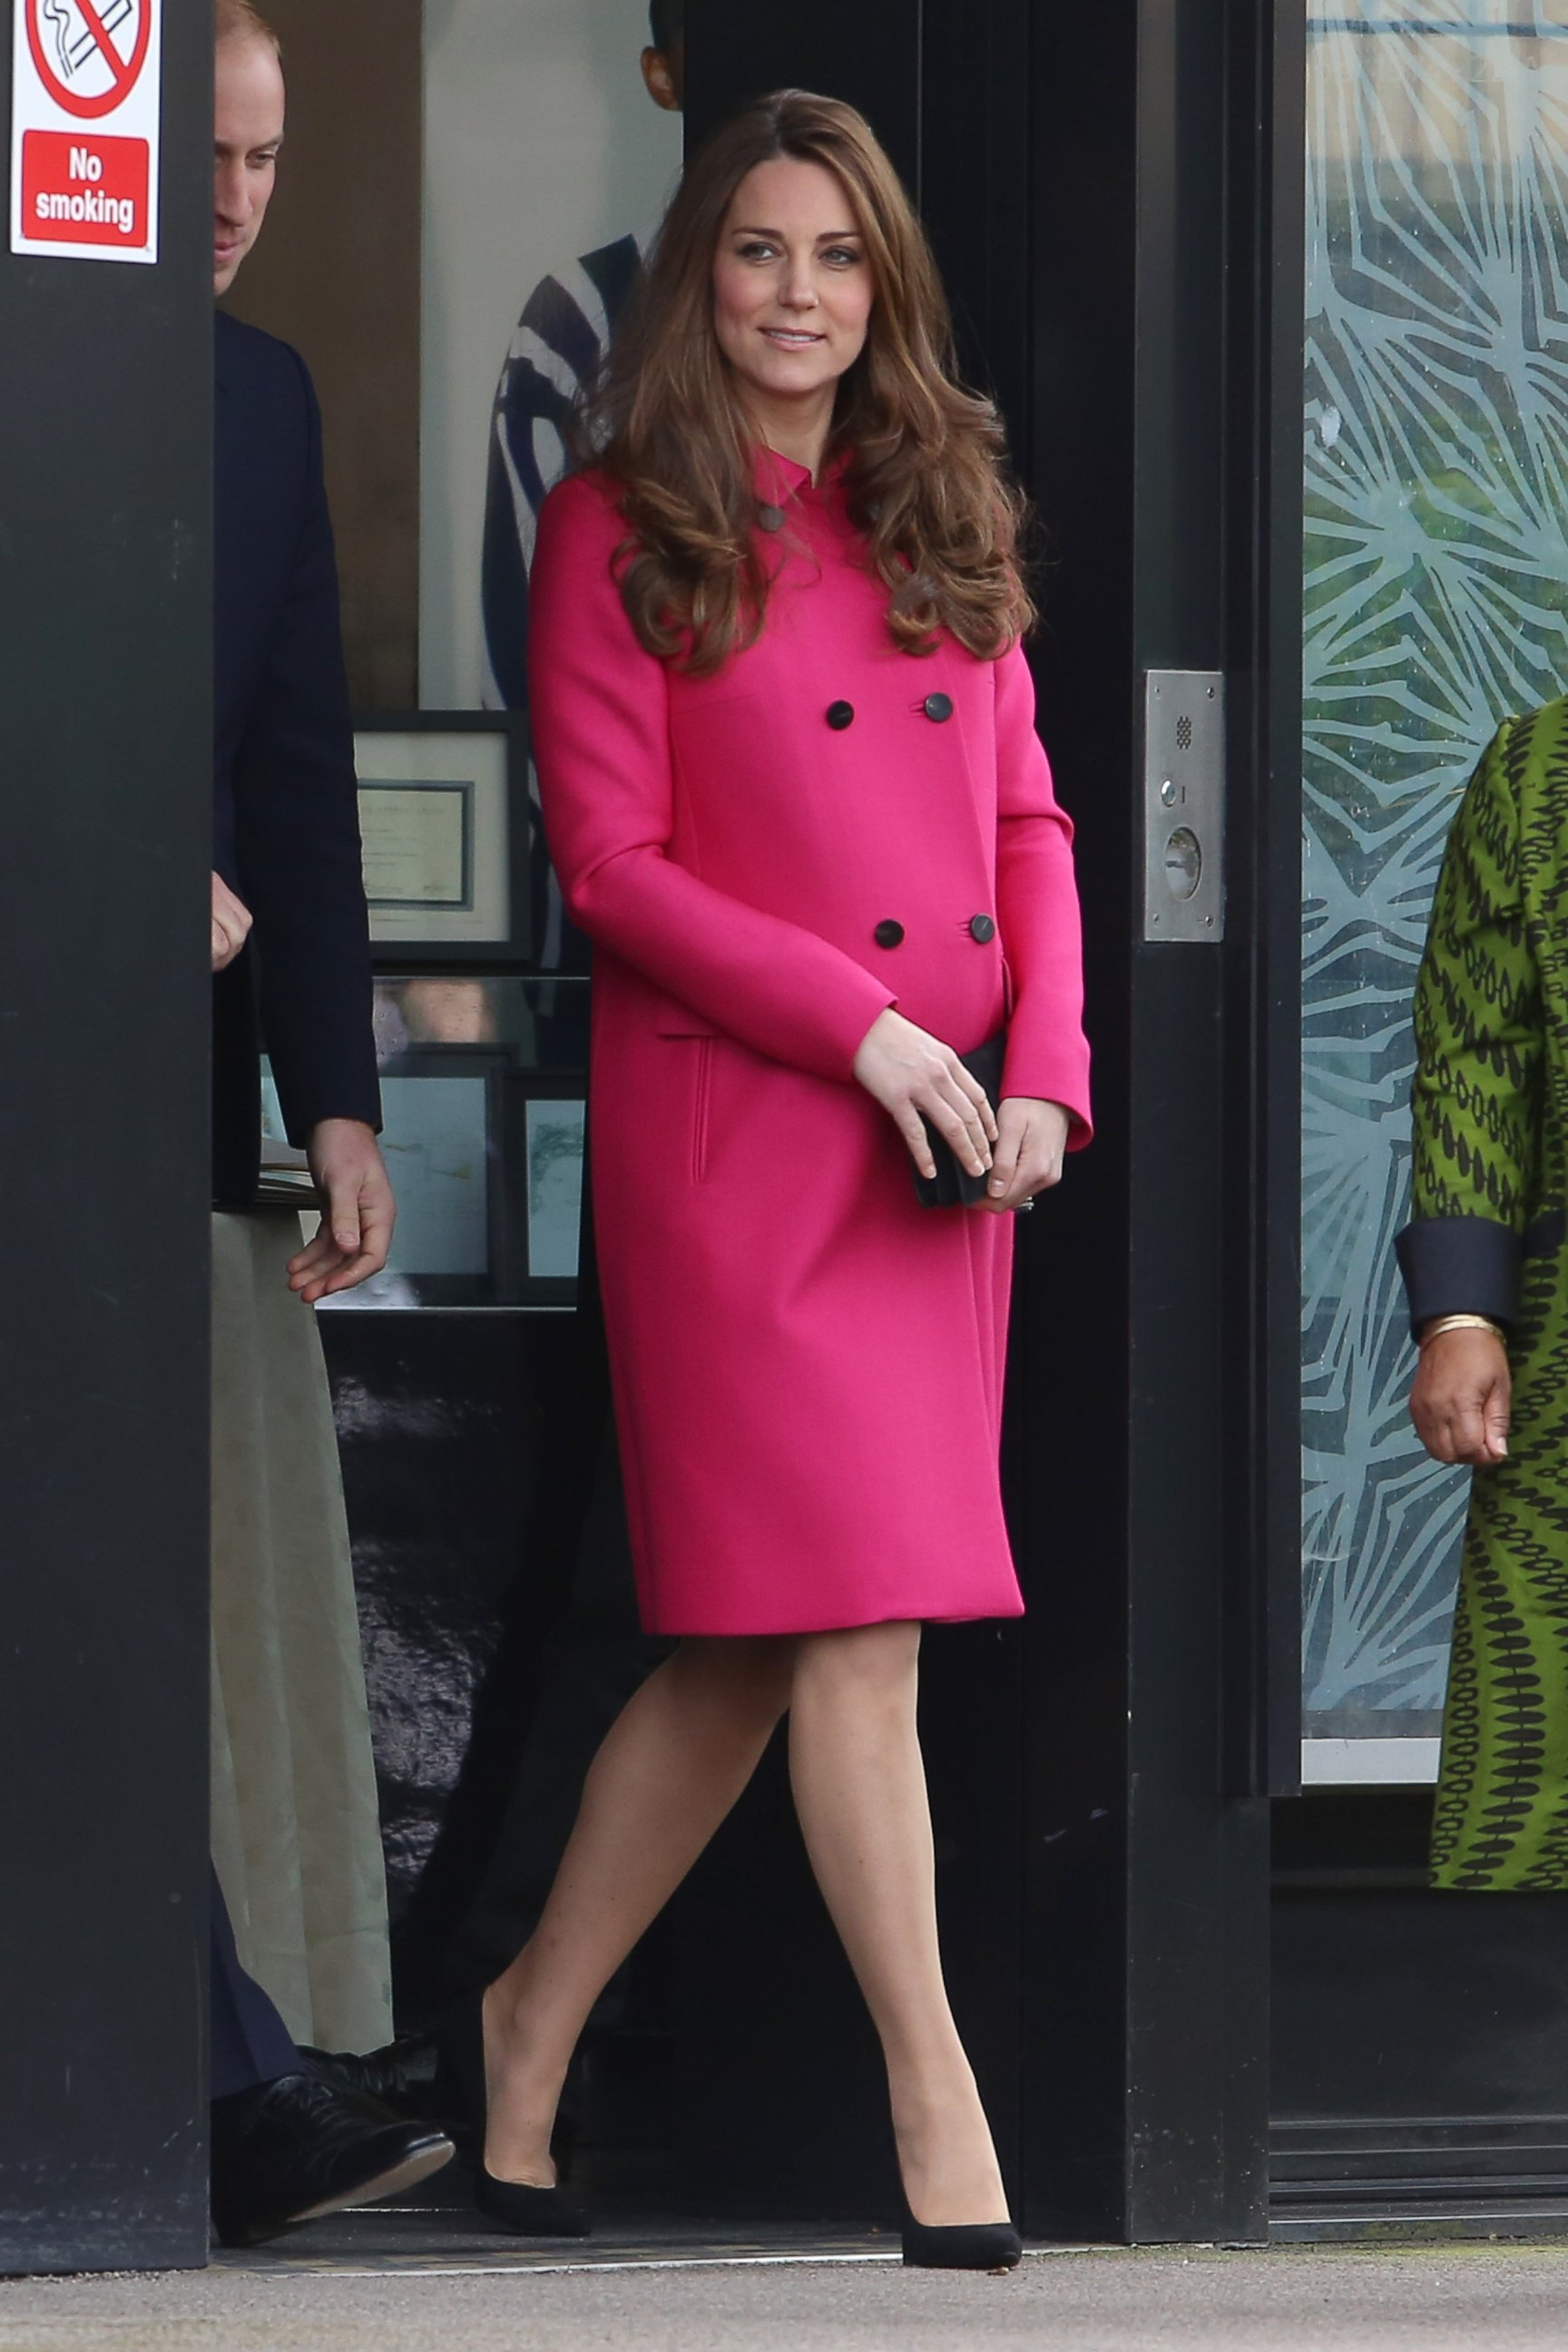 Duchess Kate Steps Out in Hot Pink